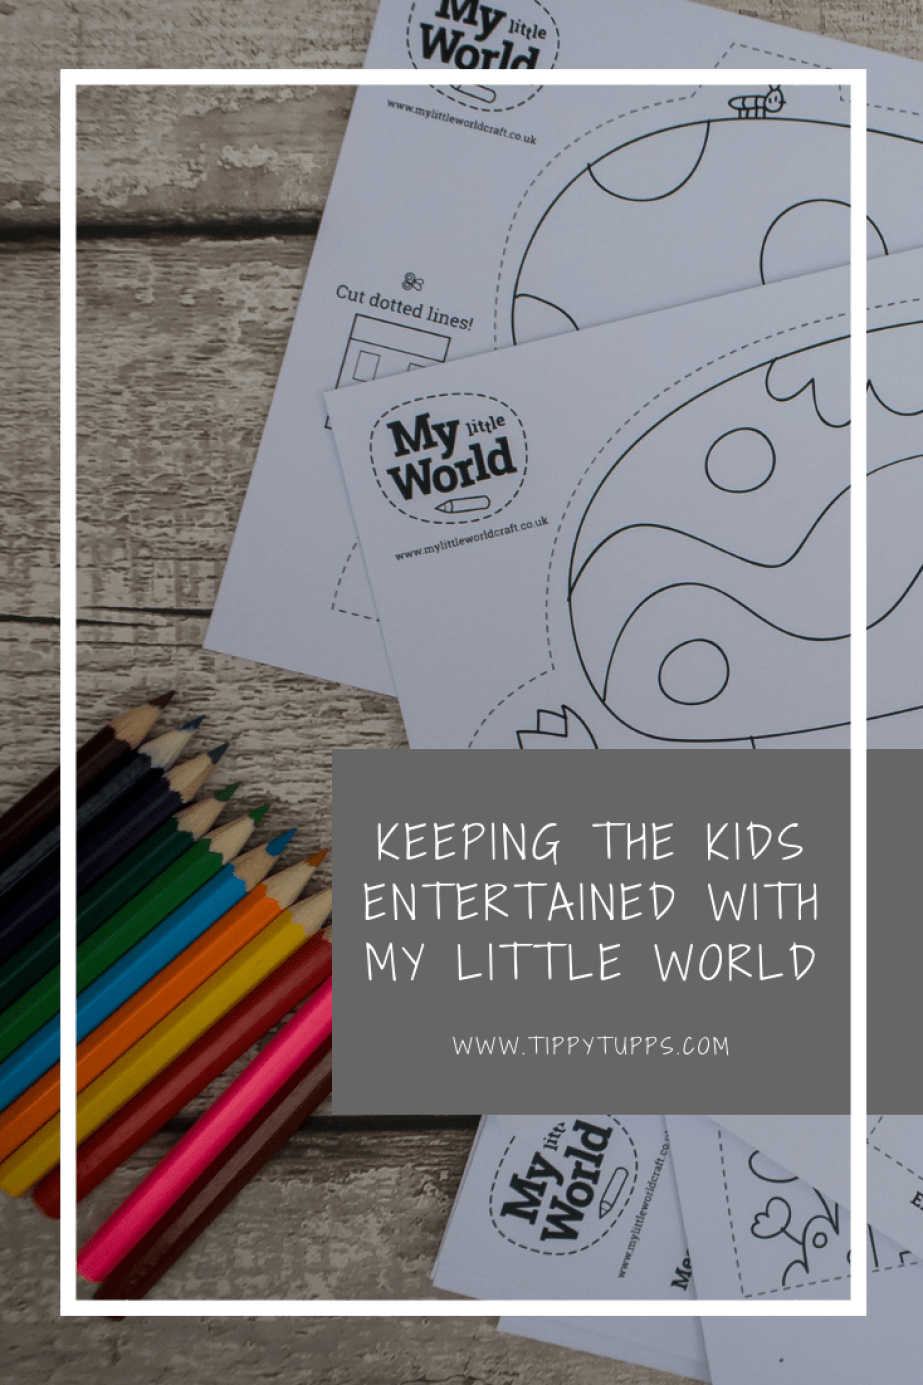 The My Little World's are packed full of beautiful illustrations ready for little ones to create and explore using nothing more than paper and pencils. Great for craft loving, creative children.